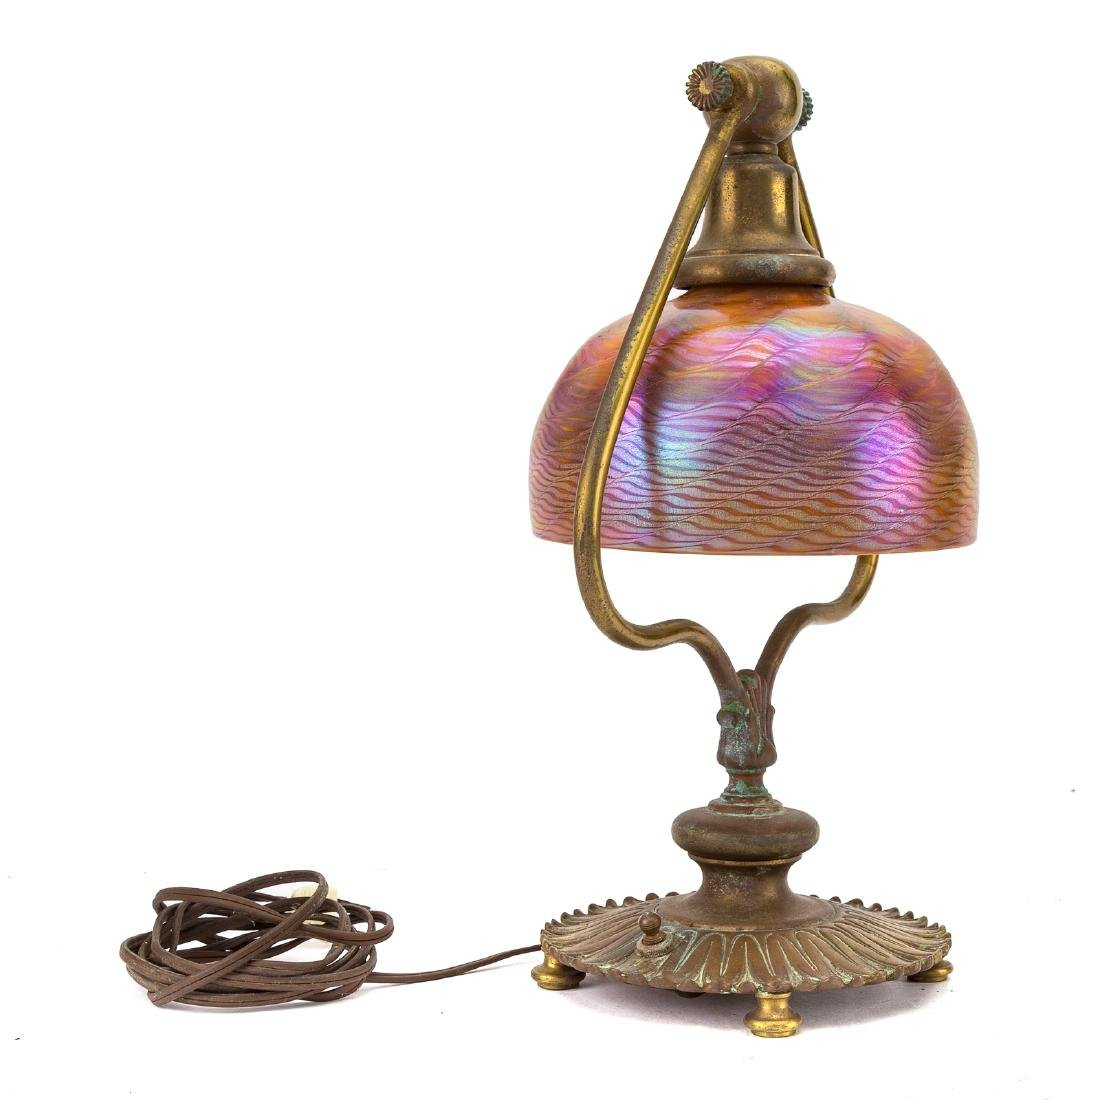 Art Nouveau lamp with Tiffany glass shade - 3